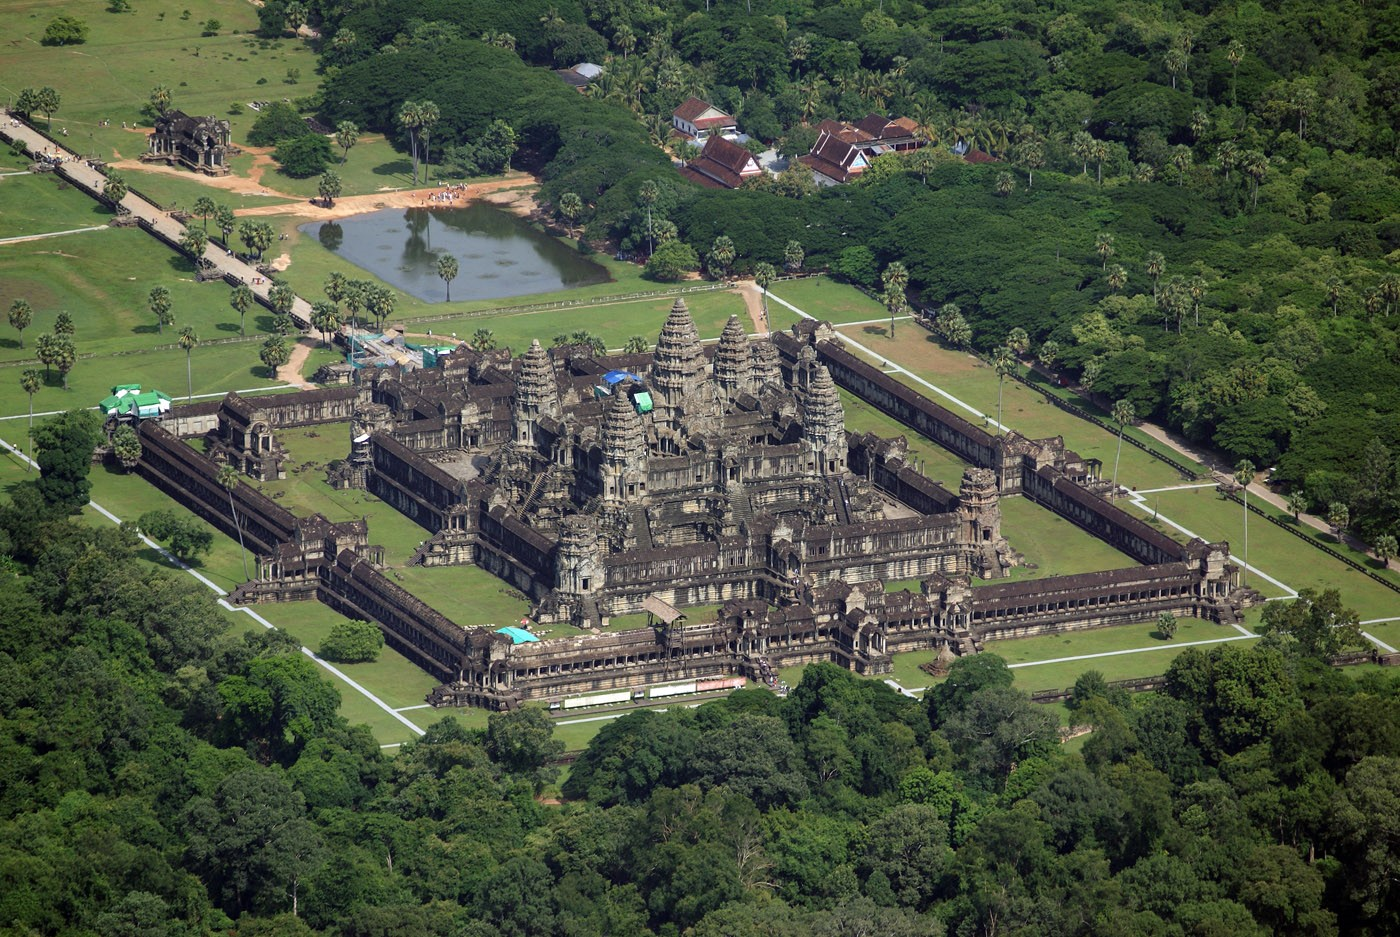 Bird's eye view of Angkor Wat